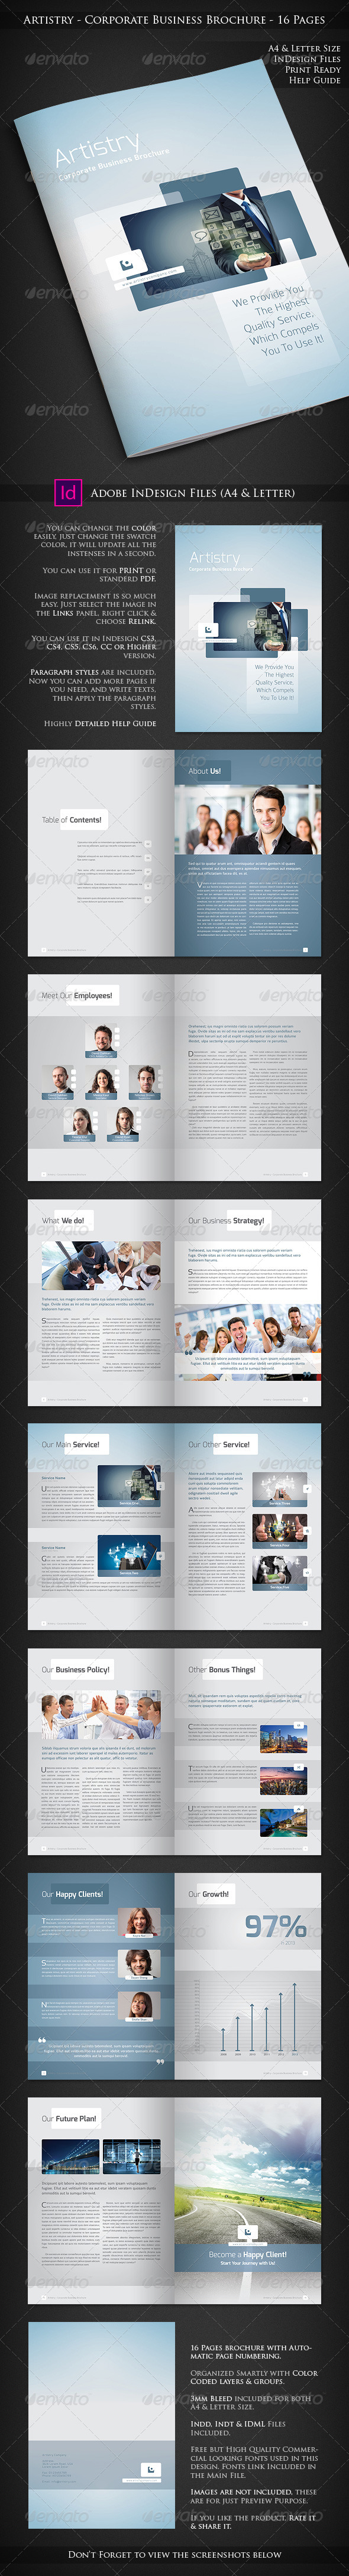 Artistry - Corporate Business Brochure - 16 Pages - Corporate Brochures